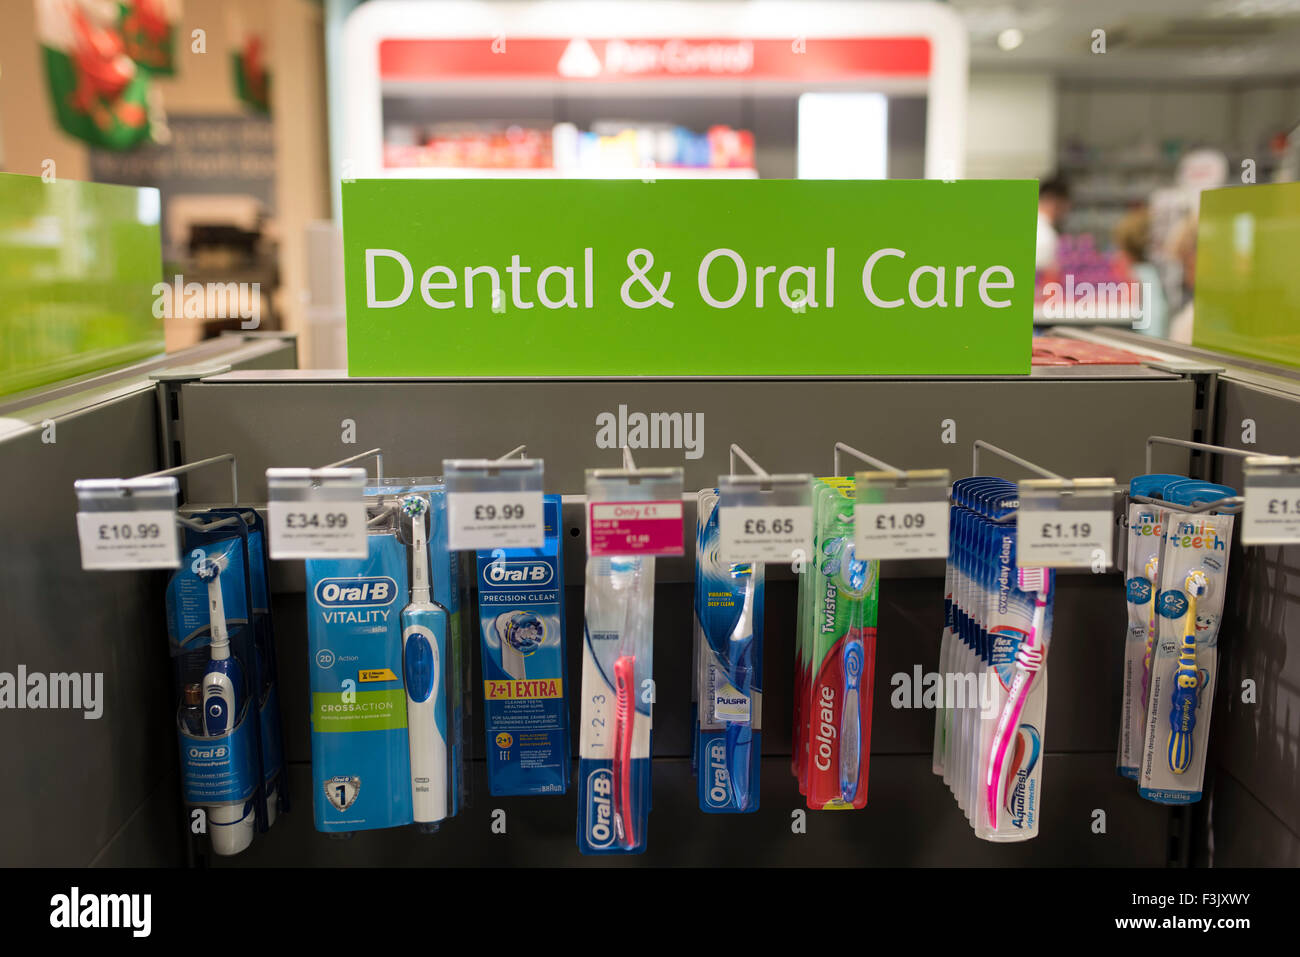 Toothbrushes on sale in a pharmacy / chemist. Stock Photo